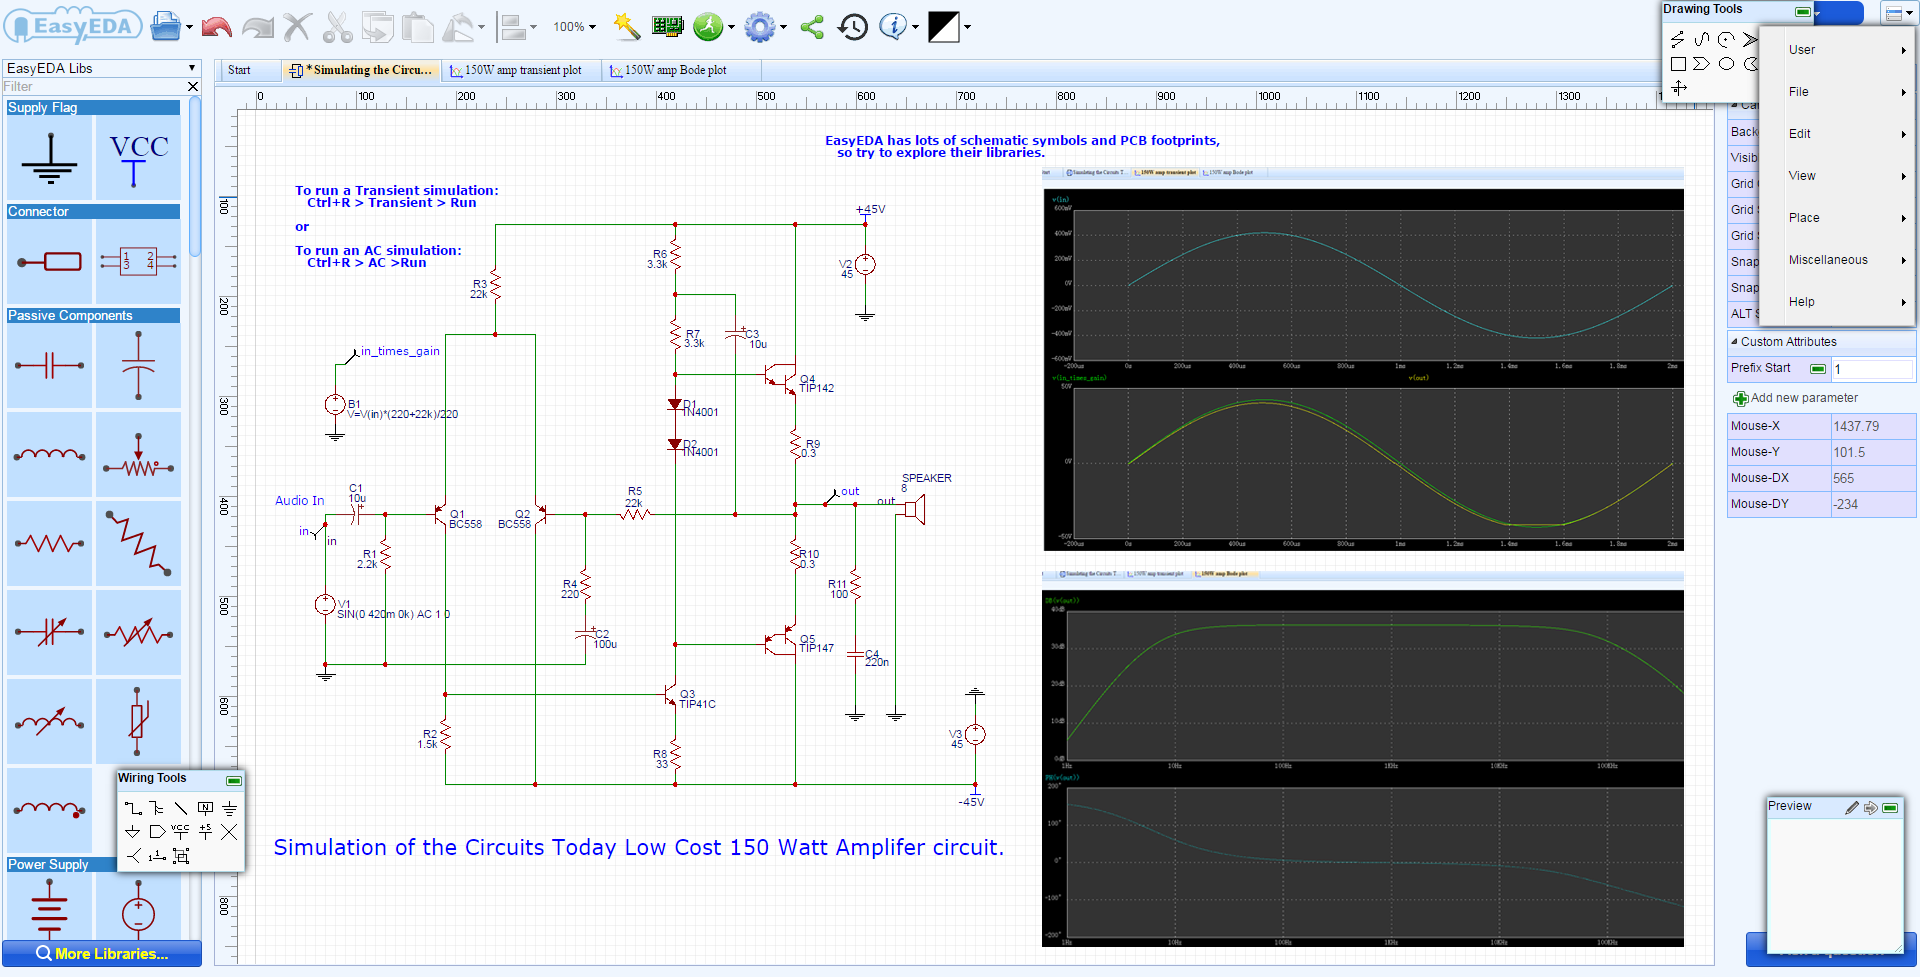 Wiring Diagram Program Mac Great Installation Of Automotive Circuit Simulation Software For Easyeda Rh Com Yacht